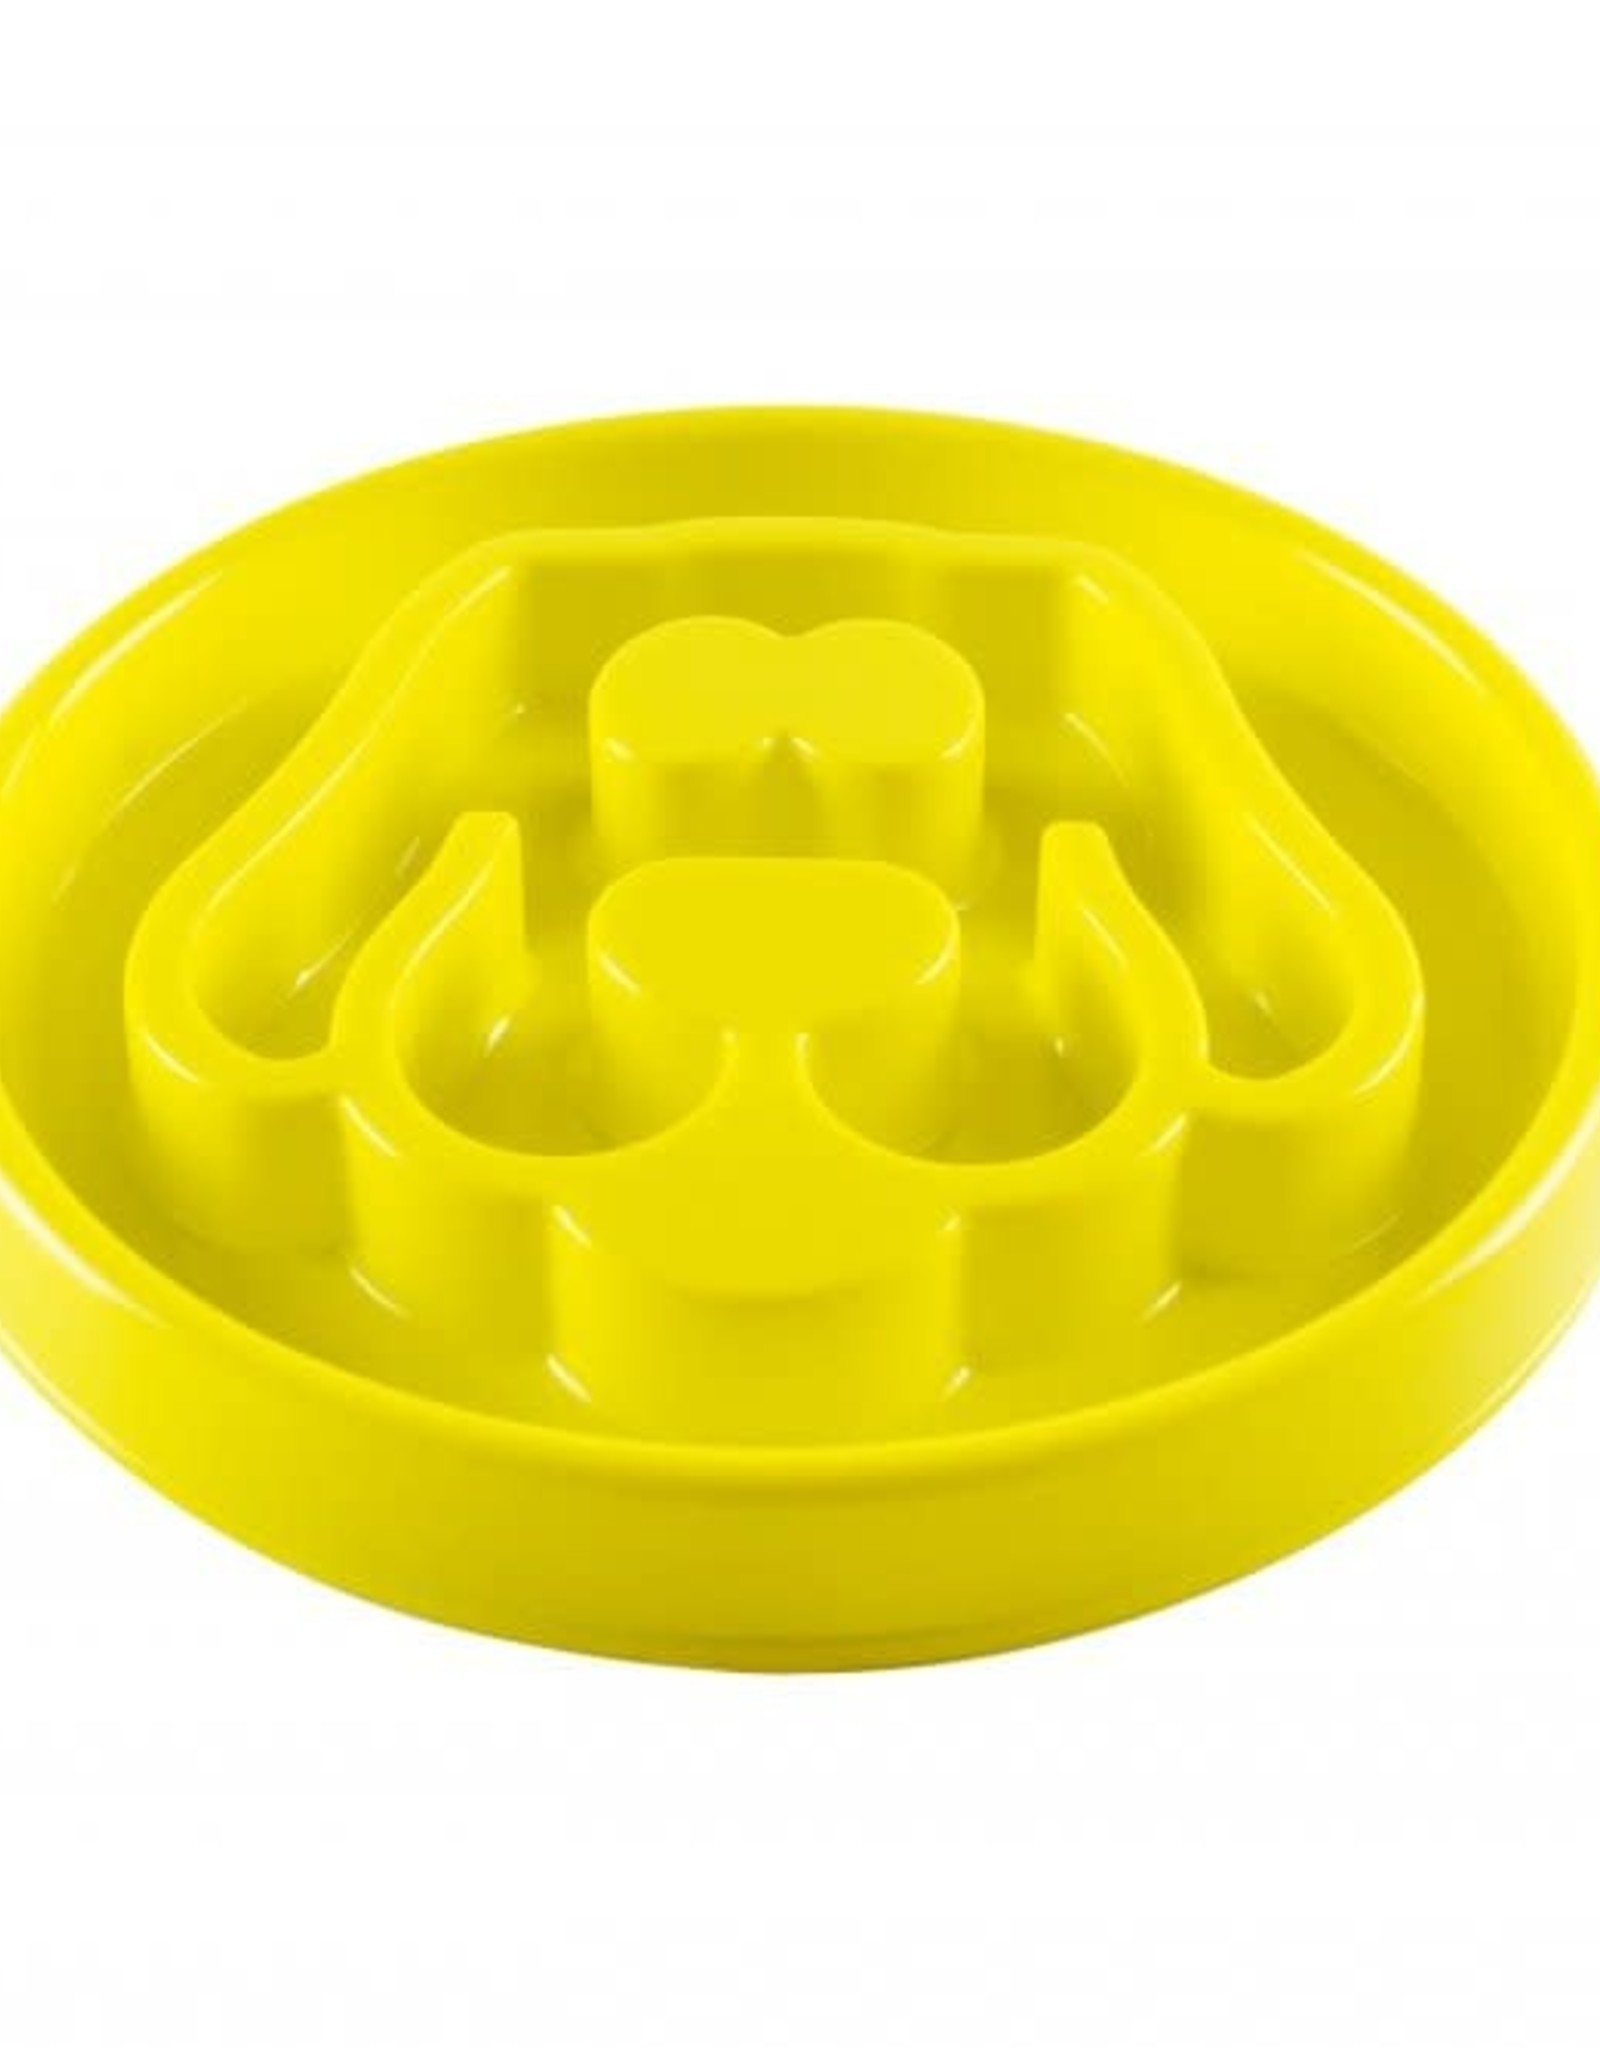 BE ONE BREED Be One Small Yellow Small Dog Slow Feeder Bowl